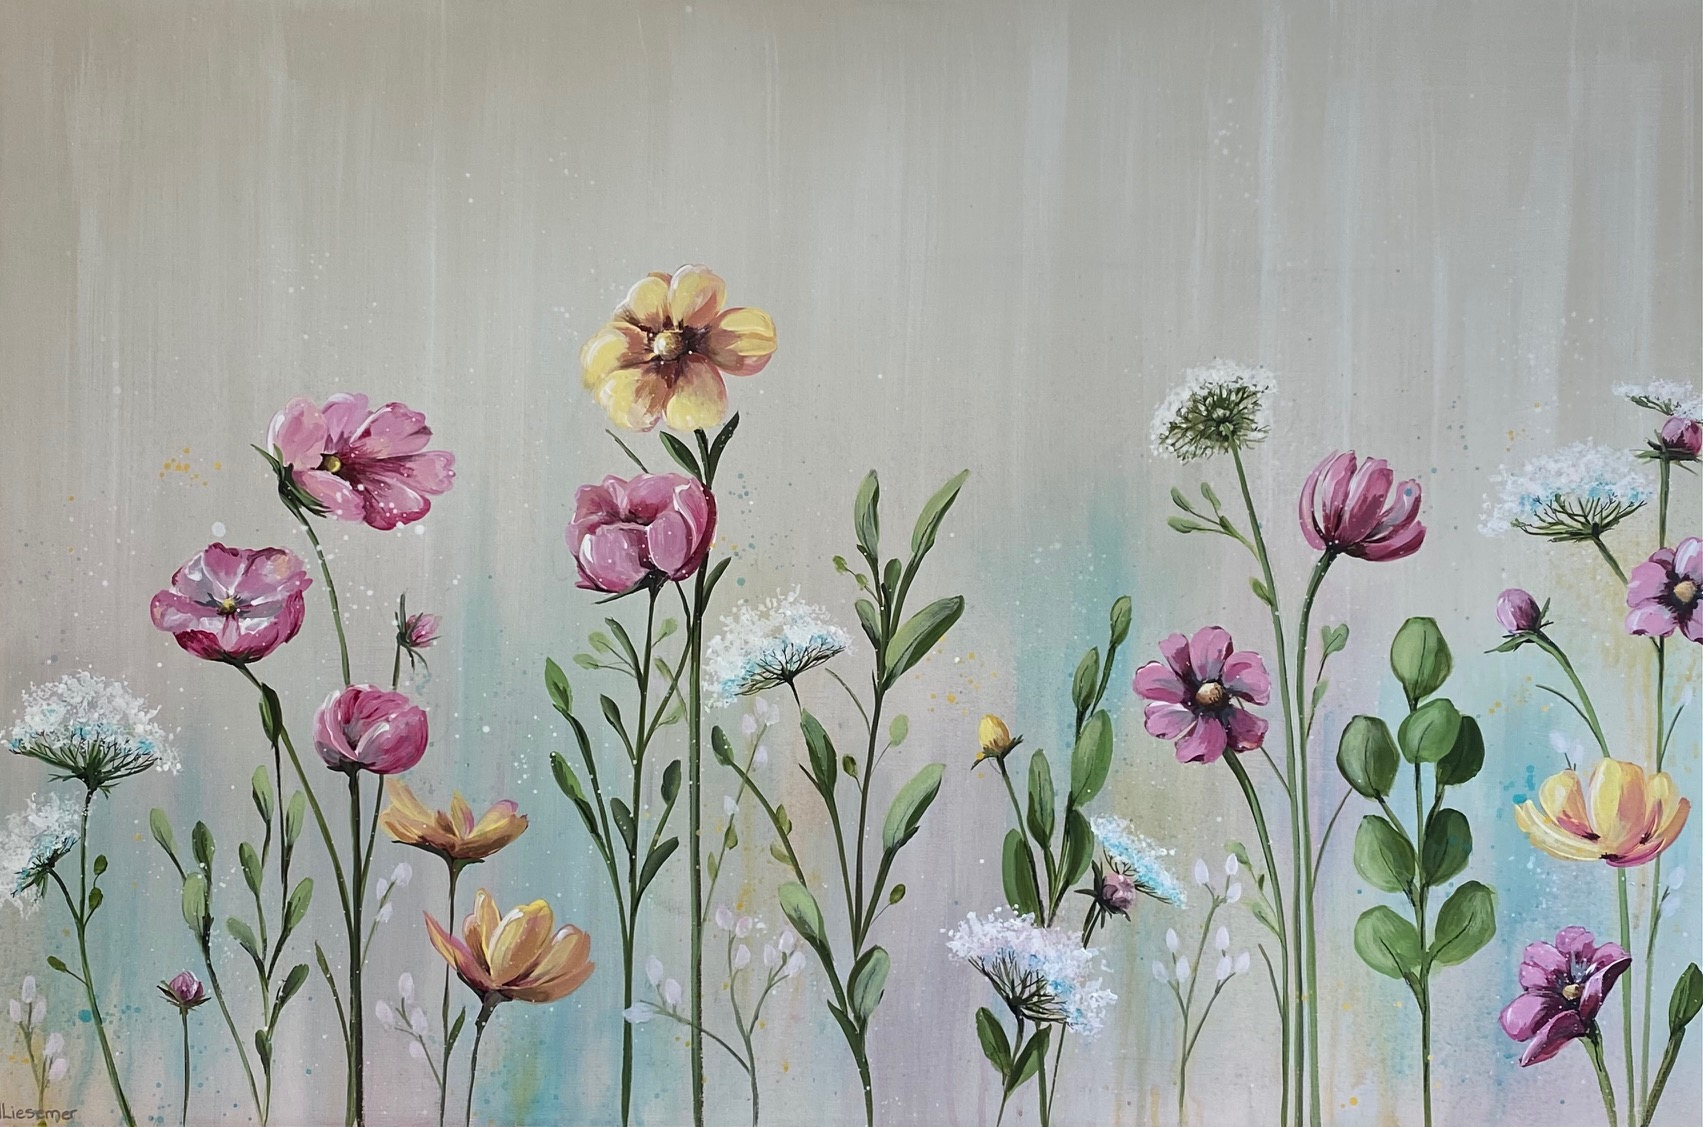 Spring Has Sprung by  Janet Liesemer - Artist Showing Onsite At the Gallery - Masterpiece Online